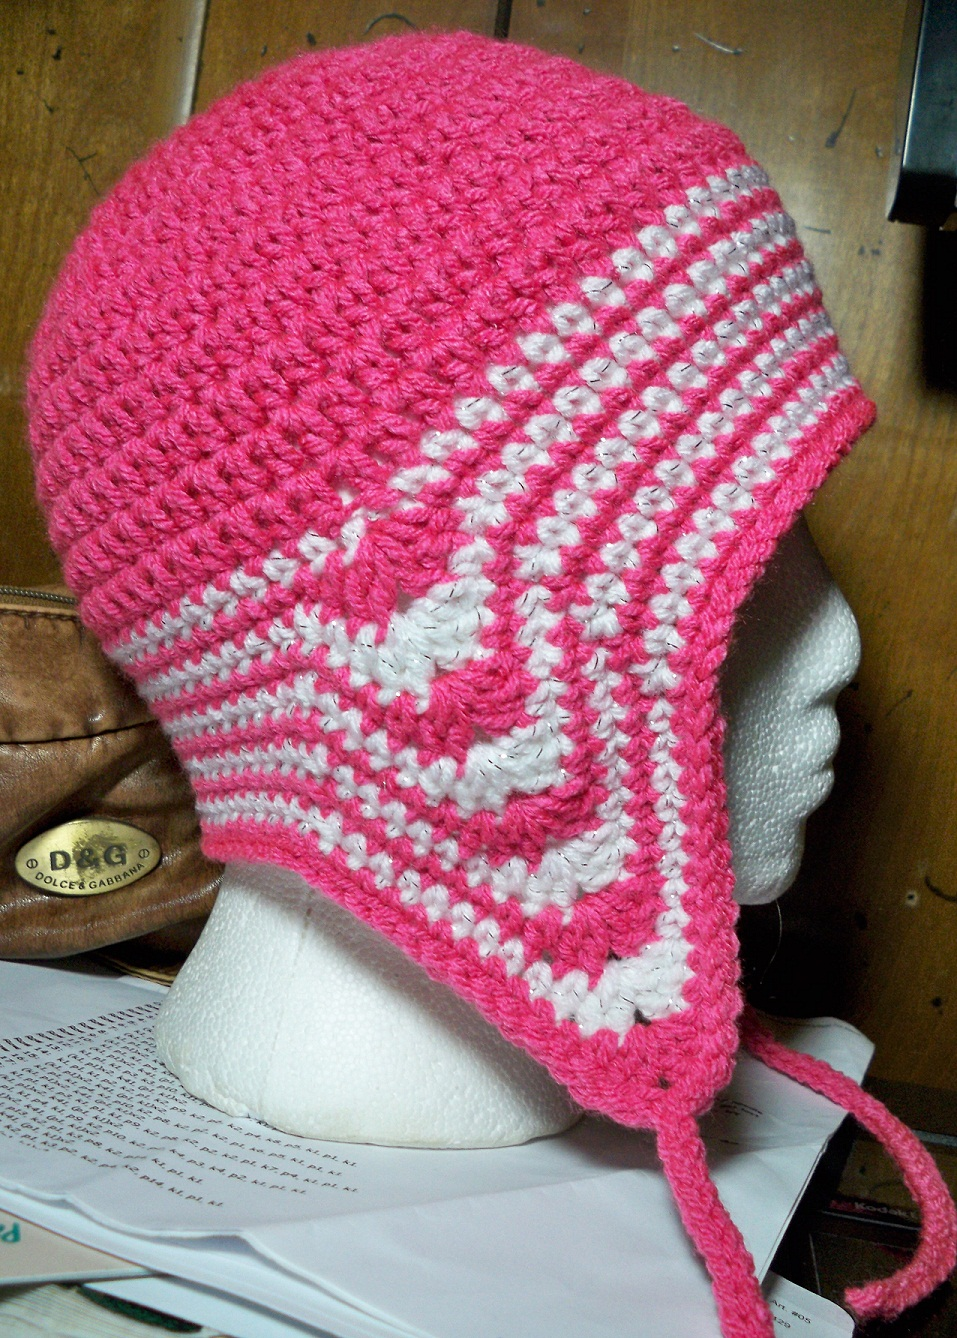 Easy Knitting Pattern Hat With Ear Flaps : JR Crochet Designs: 2 New Designs just in time for Christmas